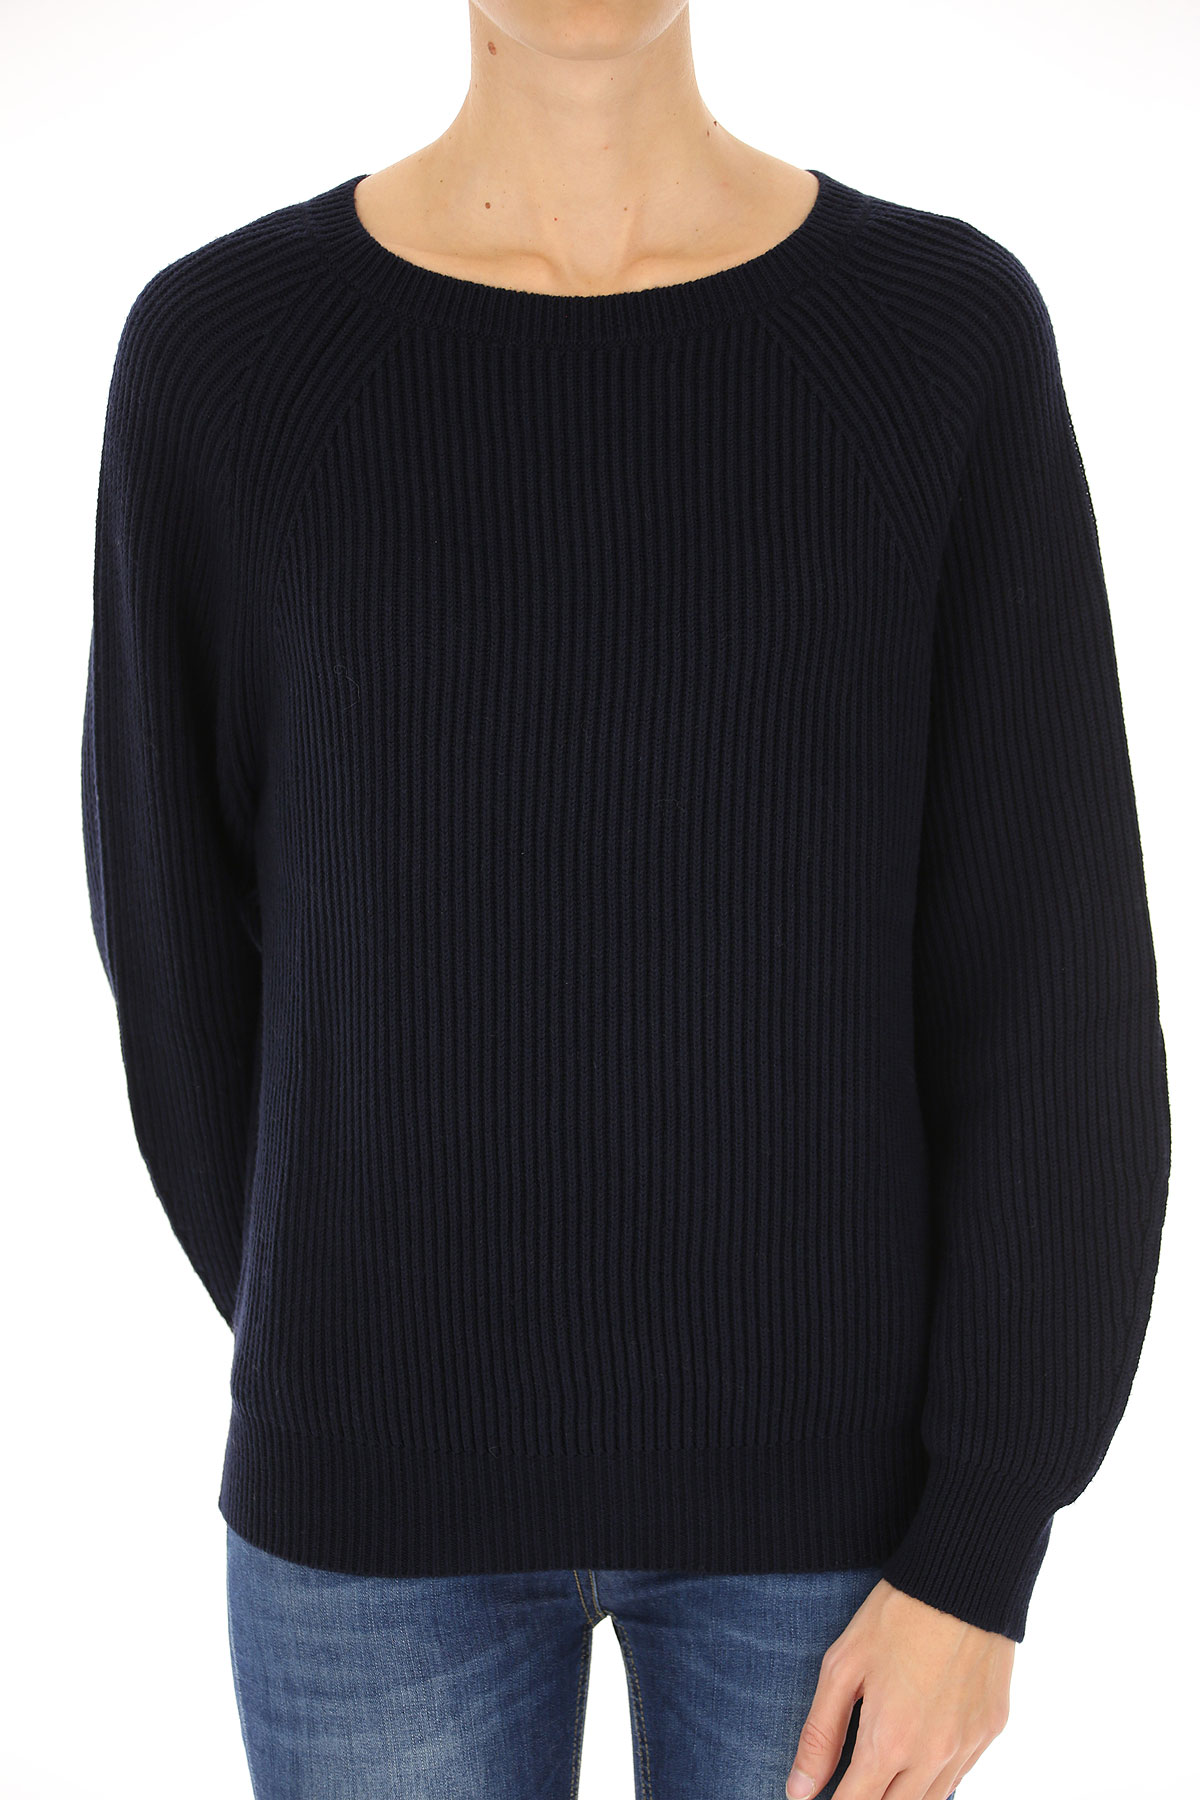 Image of Weekend by Max Mara Sweater for Women Jumper, Midnight Blue, Cotton, 2017, 10 2 4 6 8